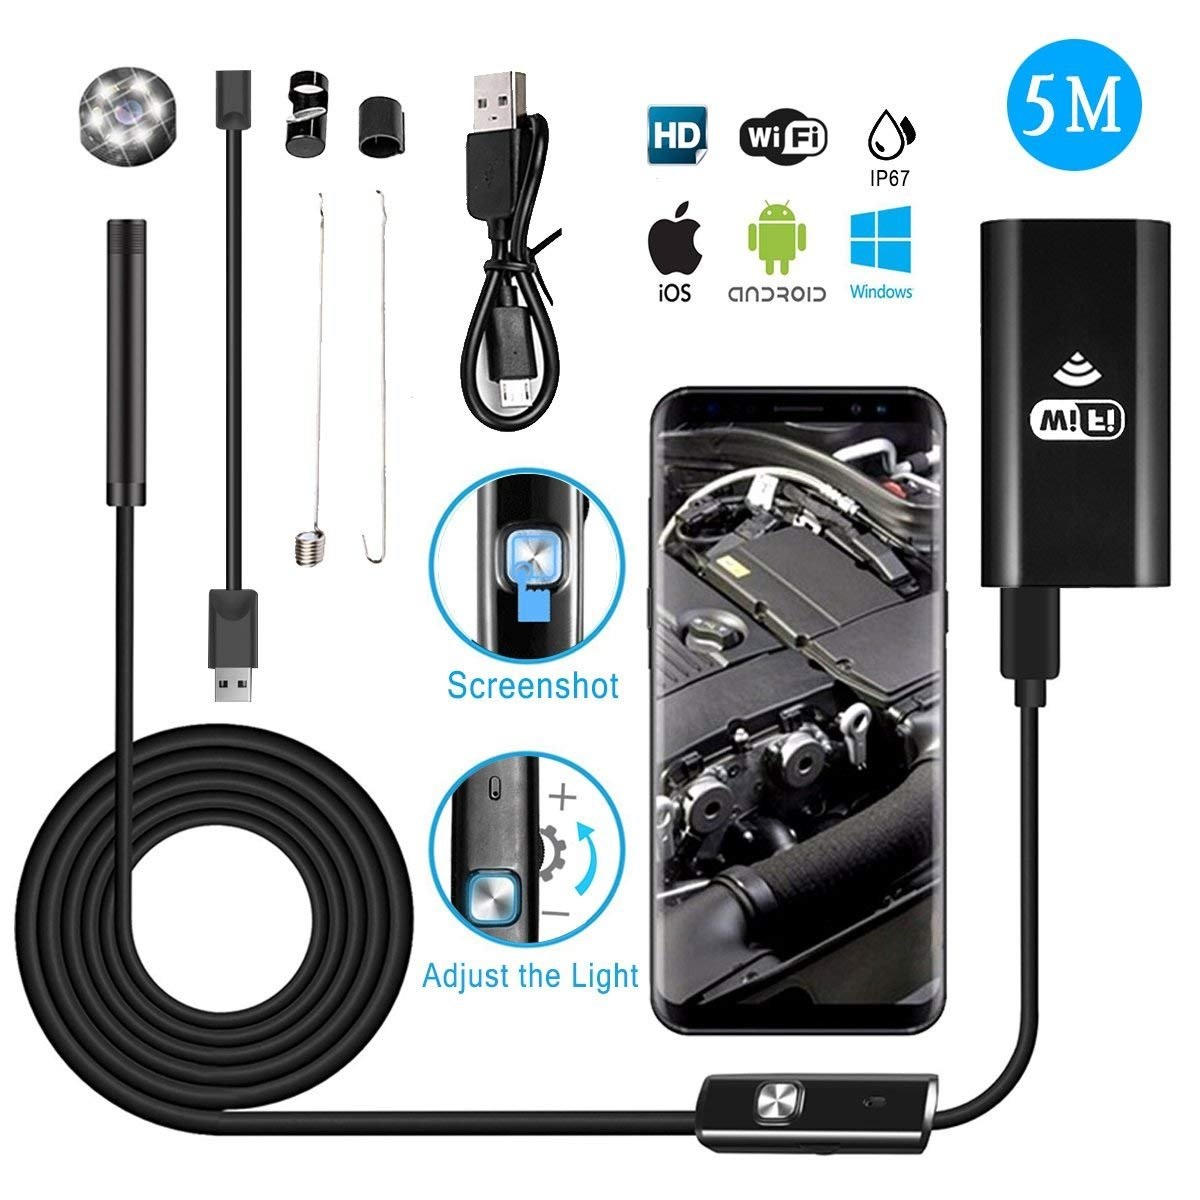 iPad Android PC MASO 5M WiFi Borescope Inspection Camera 8mm Lens Borescope Wireless Endoscope 2.0 Megapixels 720P HD IP67 Waterproof with 6 LED Light for iPhone